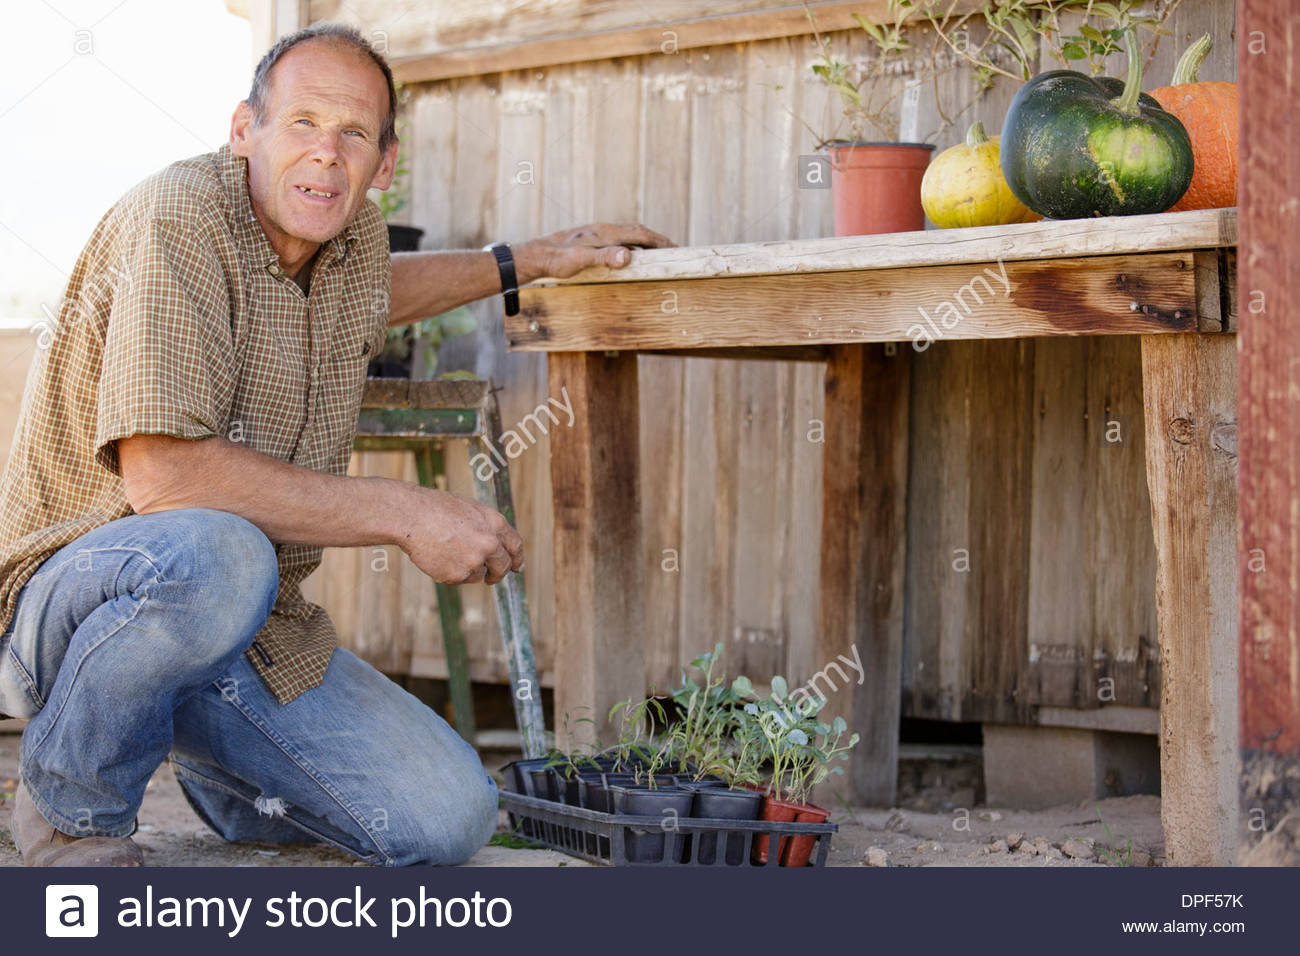 Portrait of farmer outside barn with pumpkins and plants - Stock Image